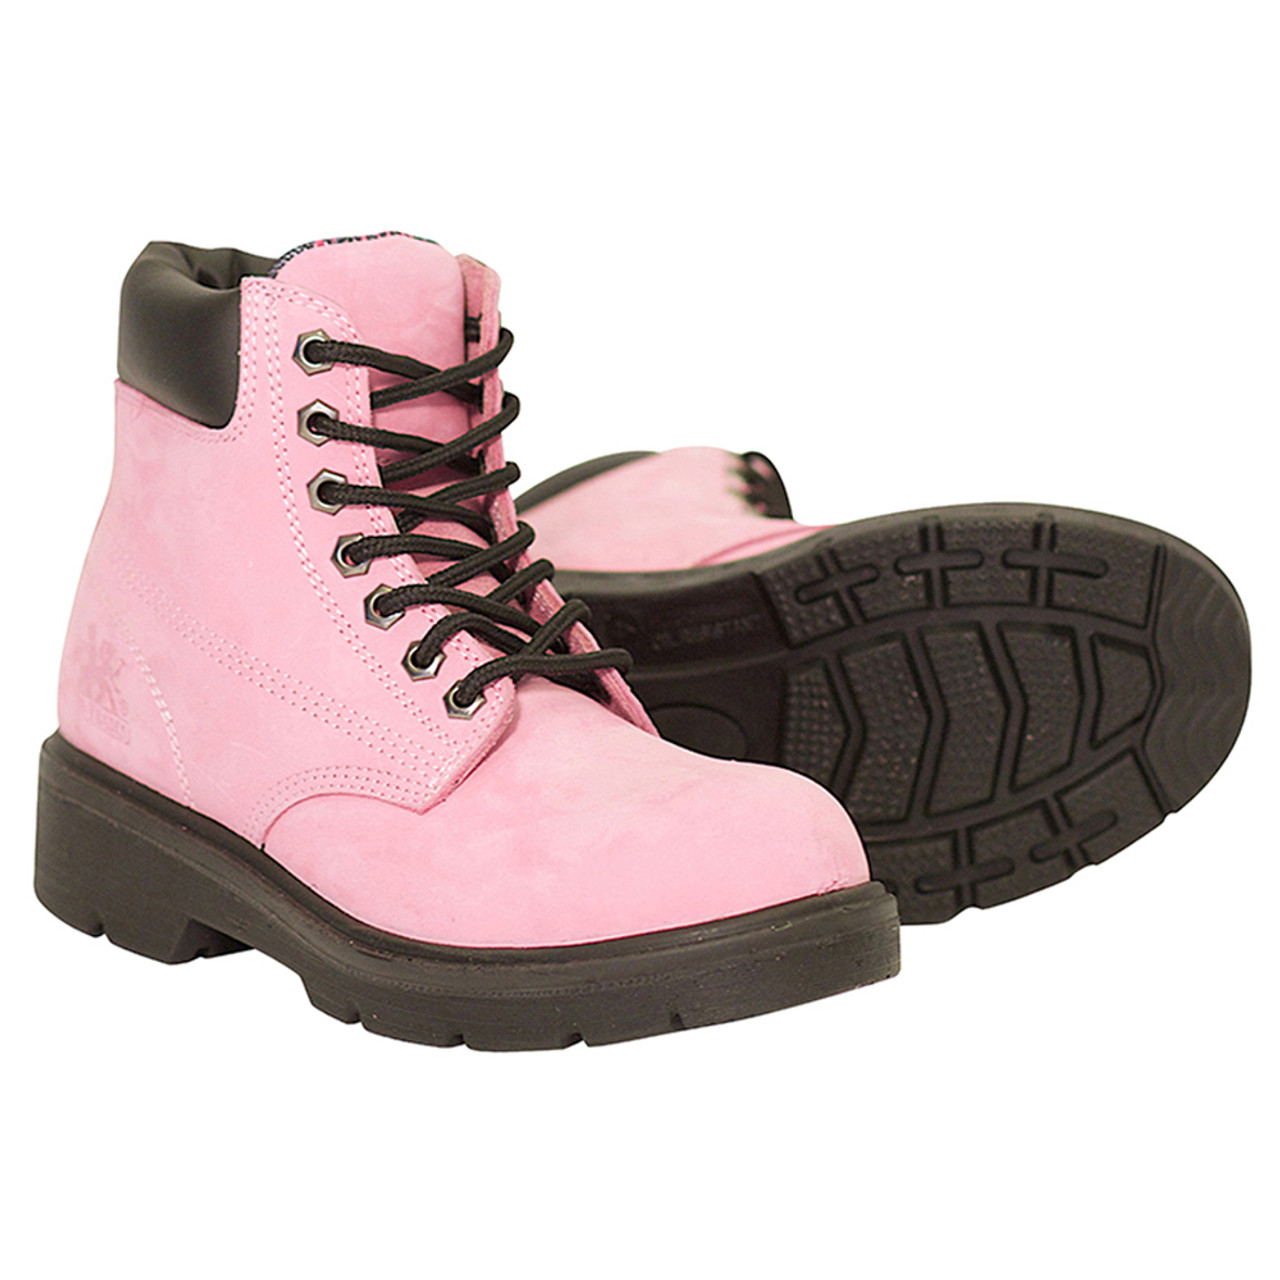 e2ee5405e4e Women's Waterproof Industrial Pink Safety Work Boot Alice